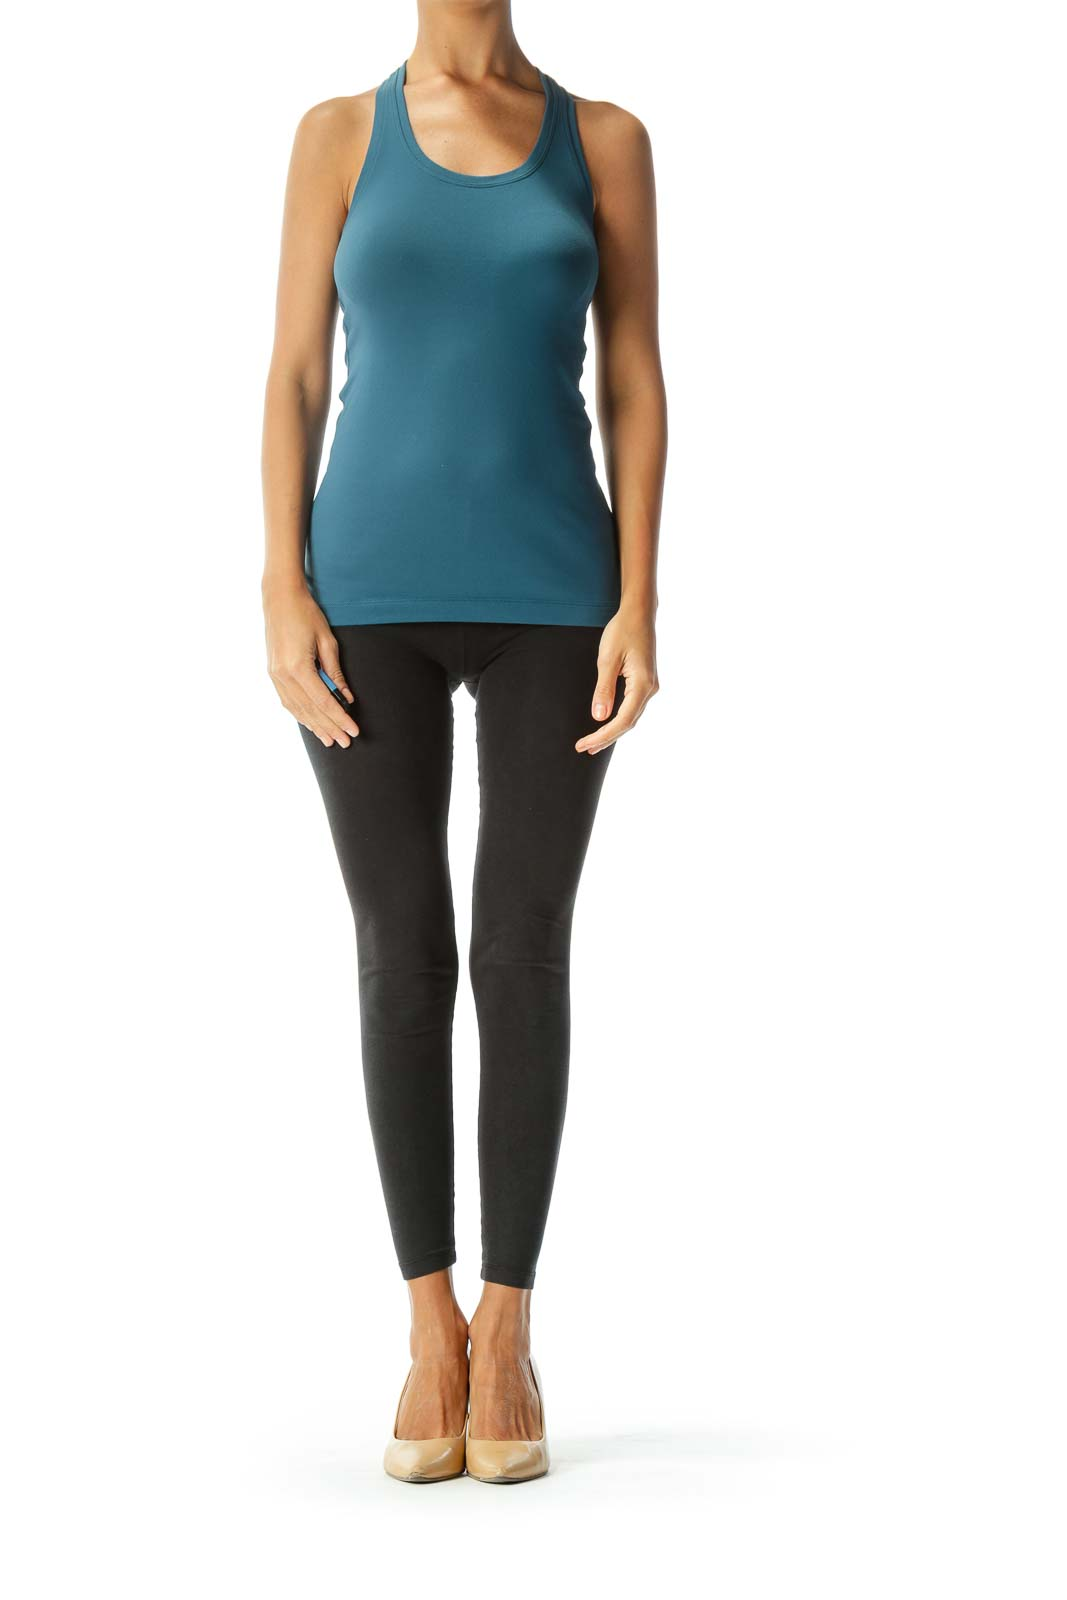 Teal Racer-Back Fitted Yoga Tank